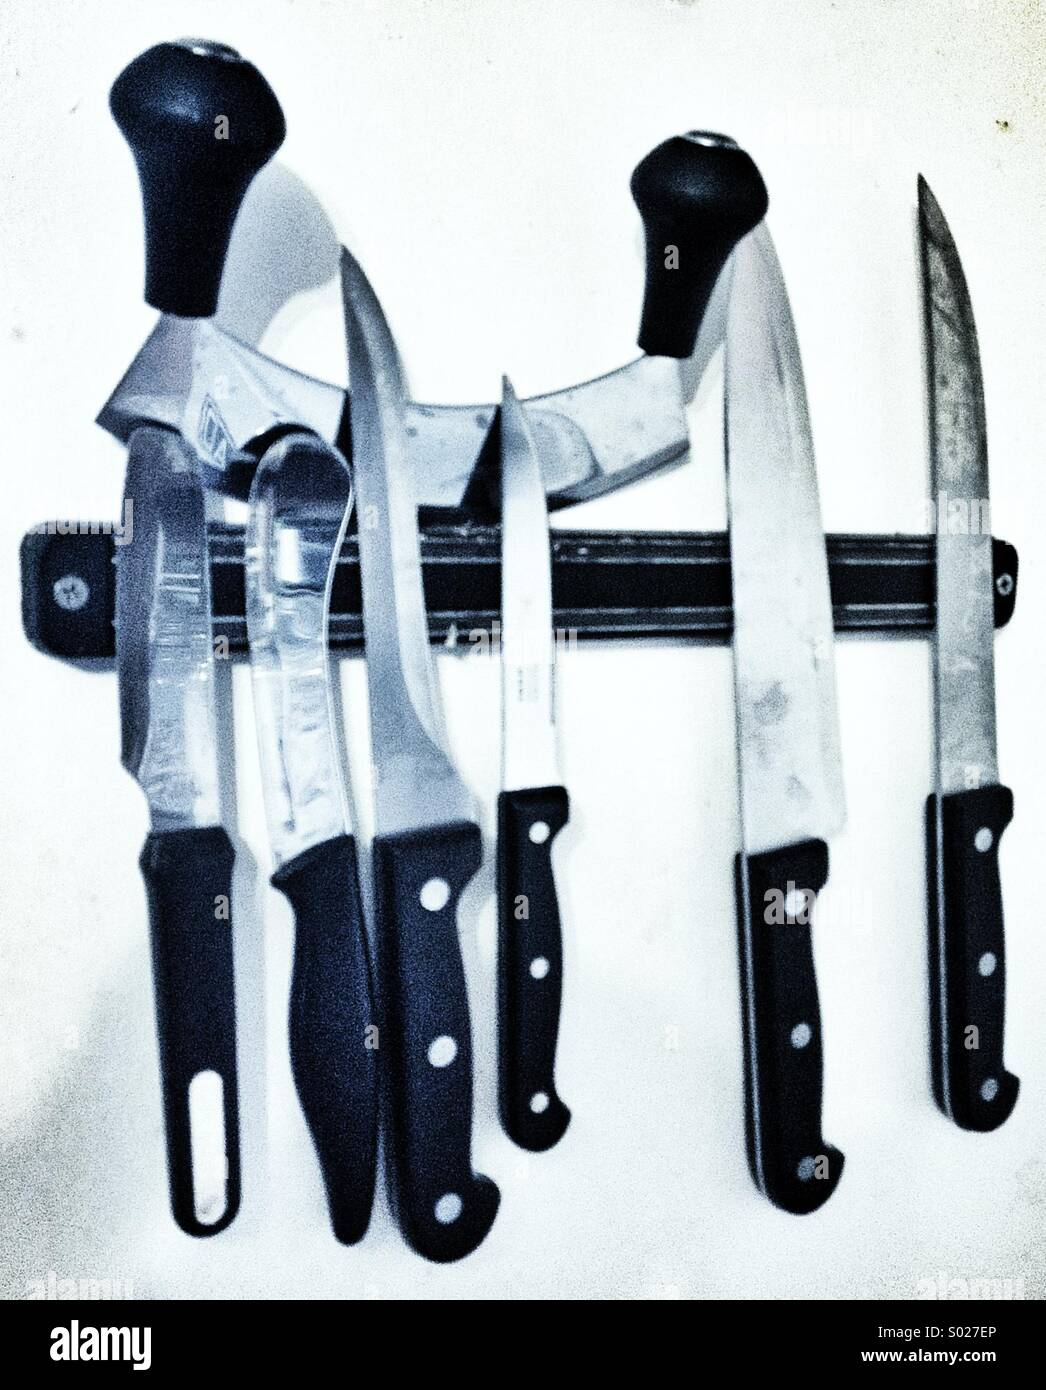 Kitchen knives - Stock Image